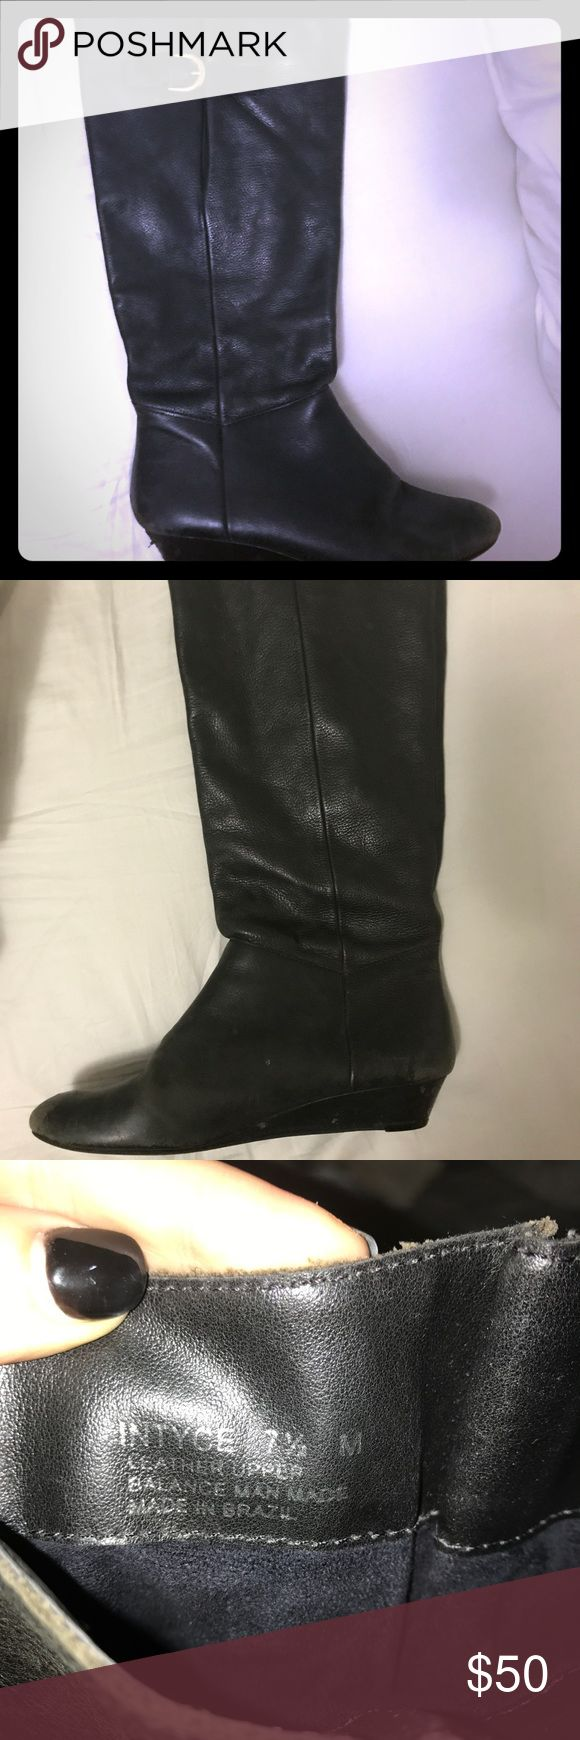 """""""Intyce"""" Steven by Steve Madden boots sz 7.5 Black leather boots by Steven for Steve Madden. Sz 7.5 in good used condition. Hits just below the knee with a small wedge heel. Steven By Steve Madden Shoes Heeled Boots"""